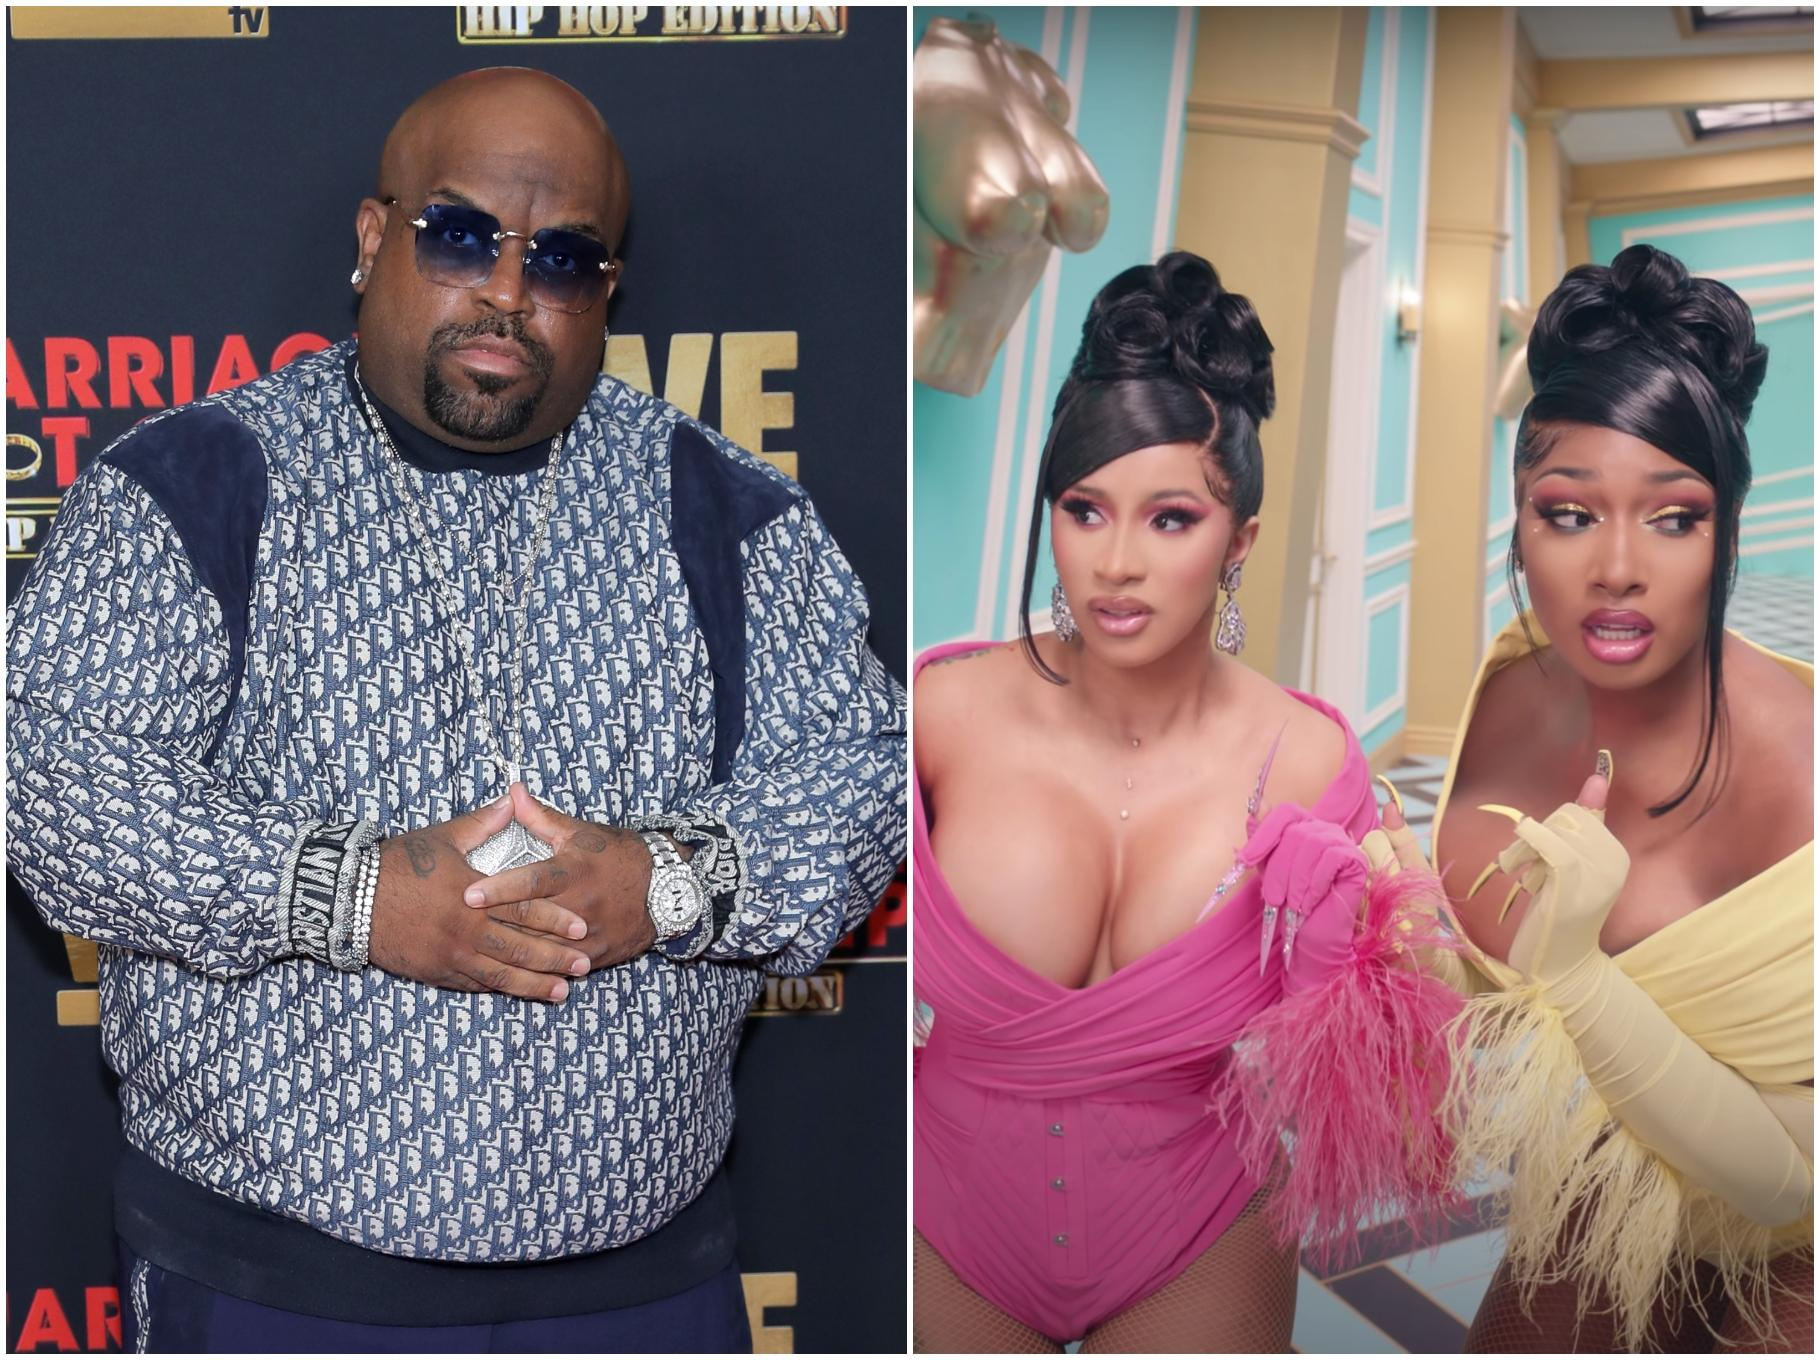 CeeLo Green calls modern music 'personal and morally disappointing' as he criticises Cardi B and Megan Thee Stallion - The Independent